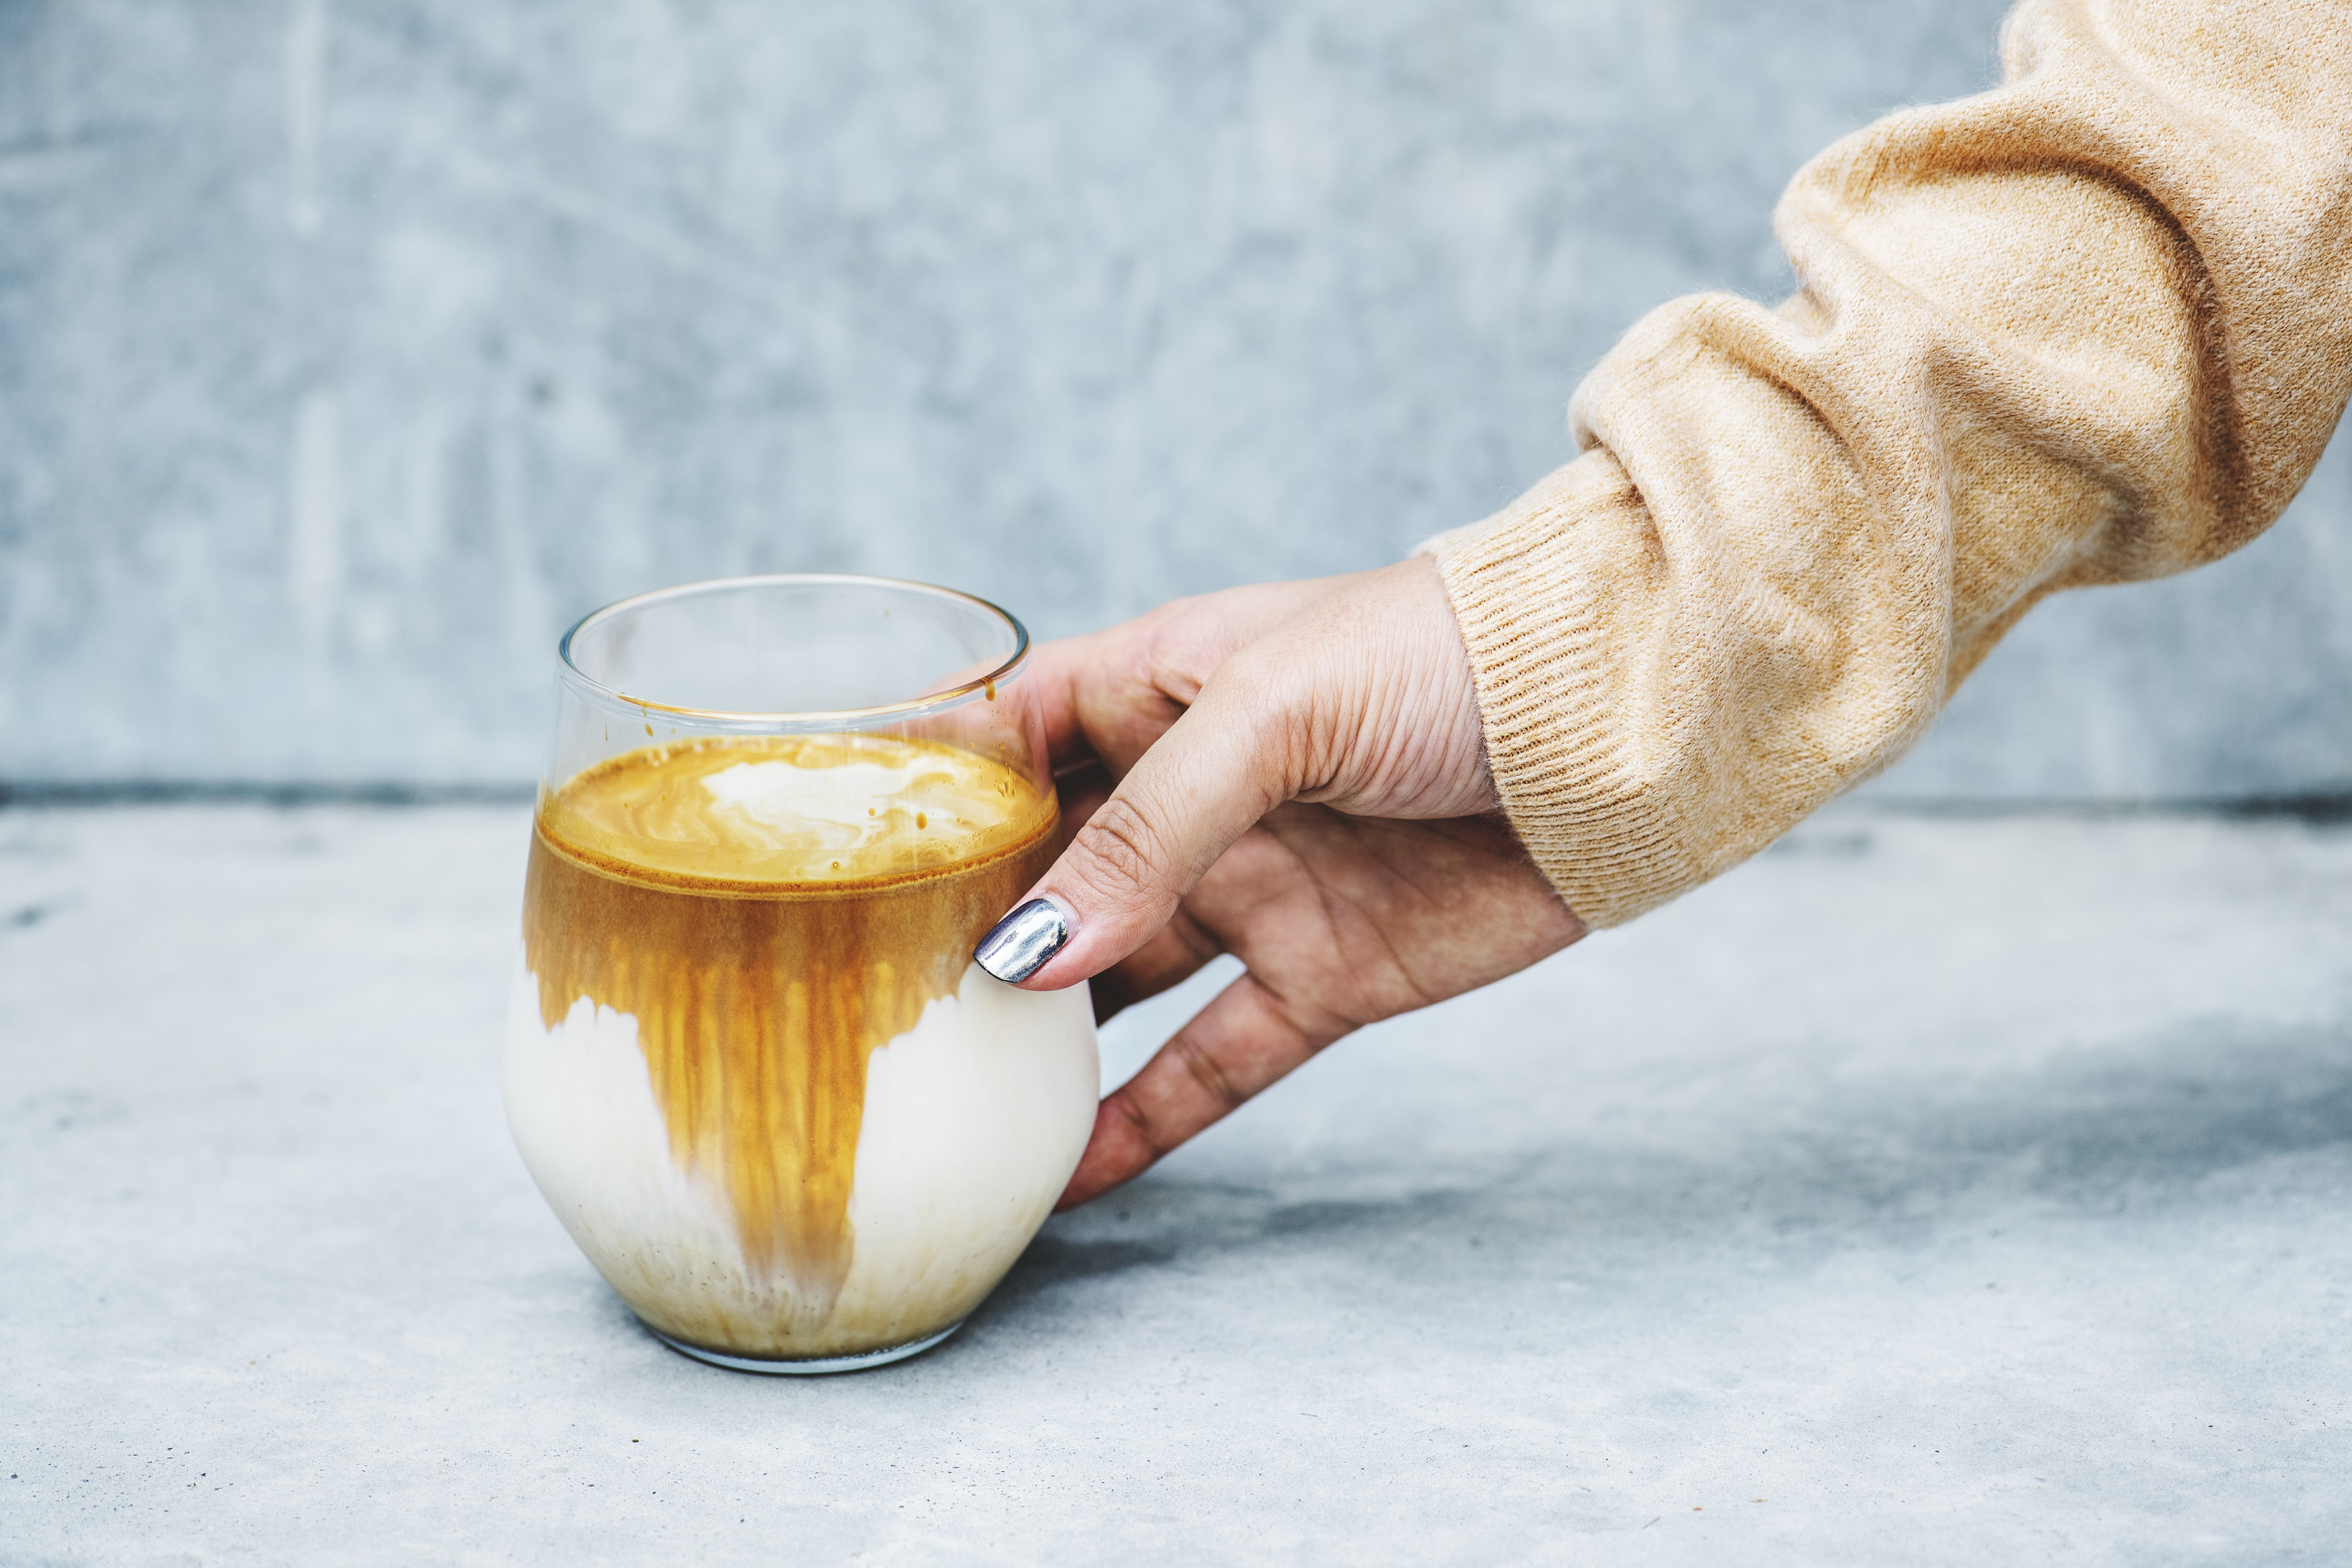 person holding clear glass cup with brown and white liquid